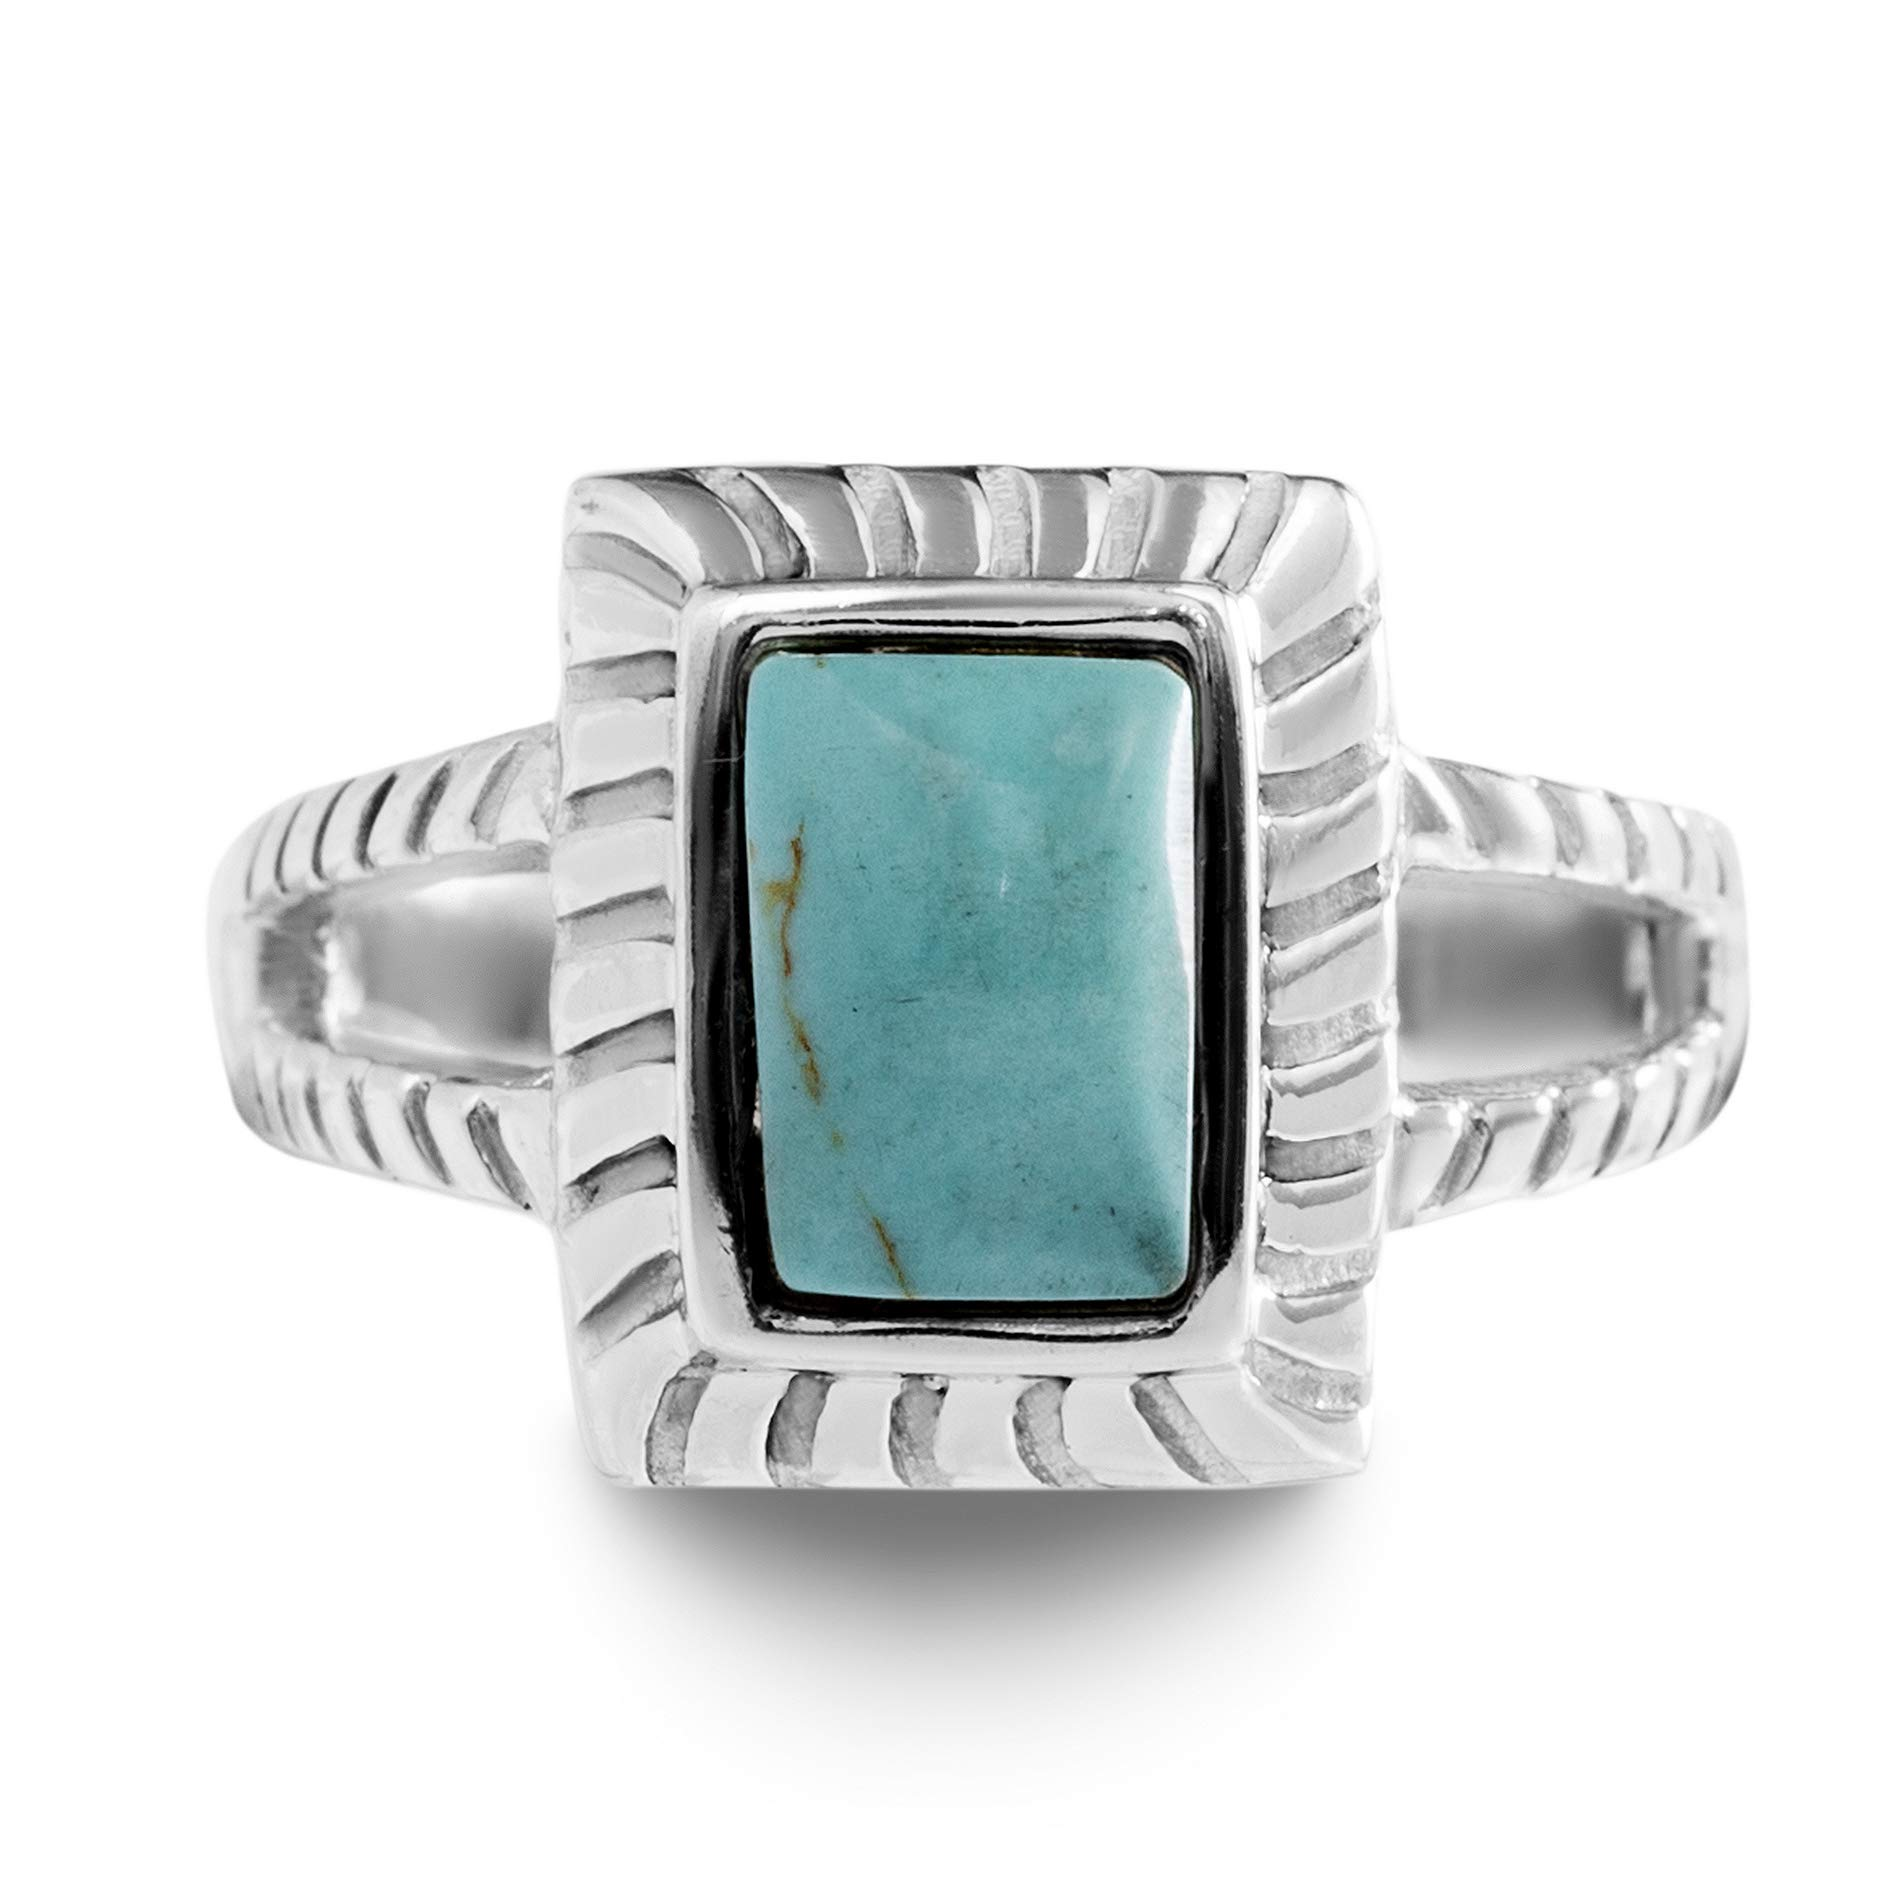 WILLOWBIRD Rhodium Plated Sterling Silver Simulated Turquoise Rectangle Split Shank Ring for Women (Various Sizes)